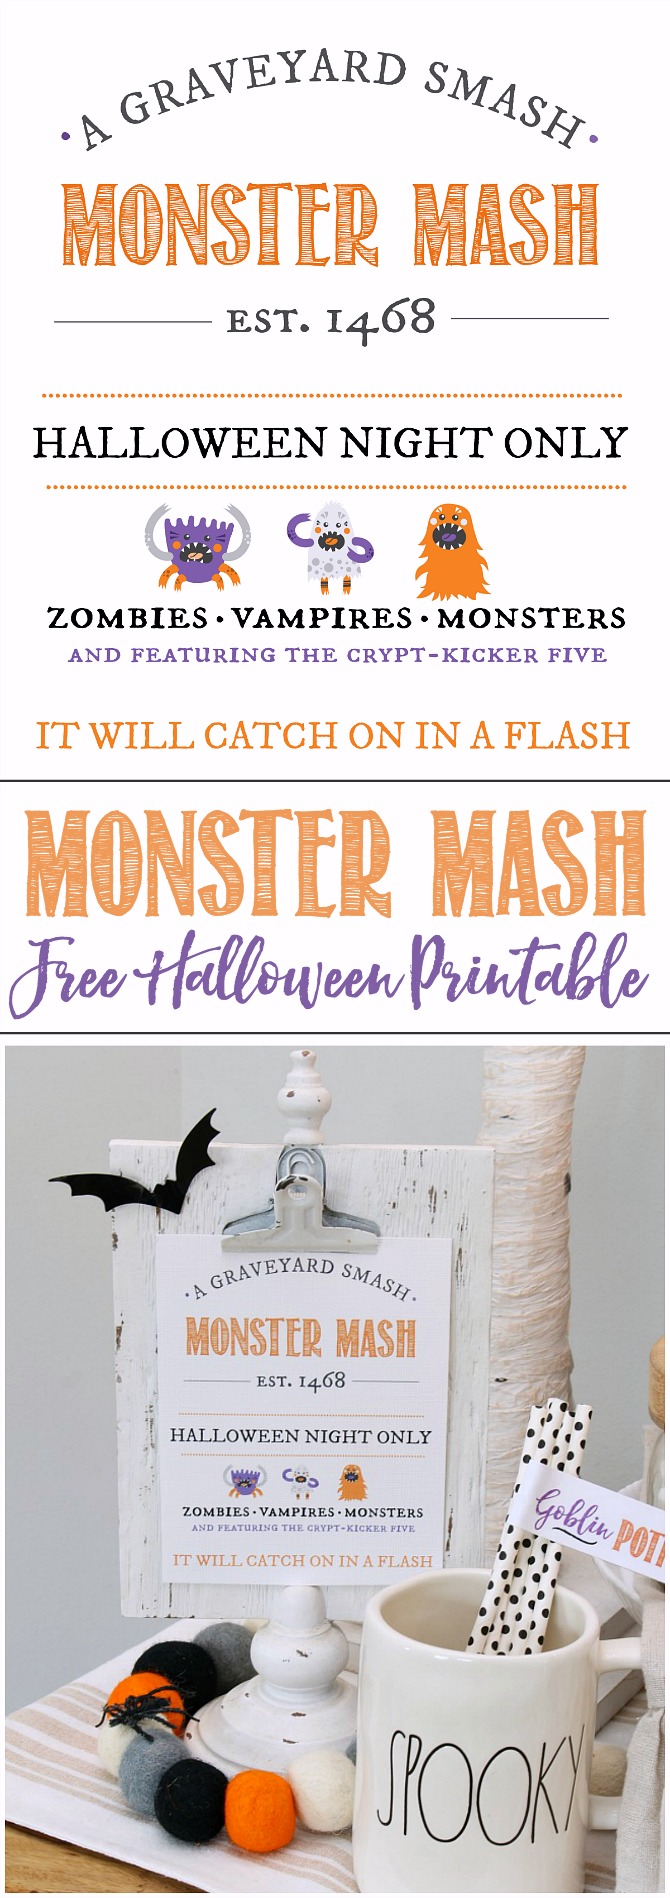 Monster Mash Free Halloween Printable displayed on a clipboard.